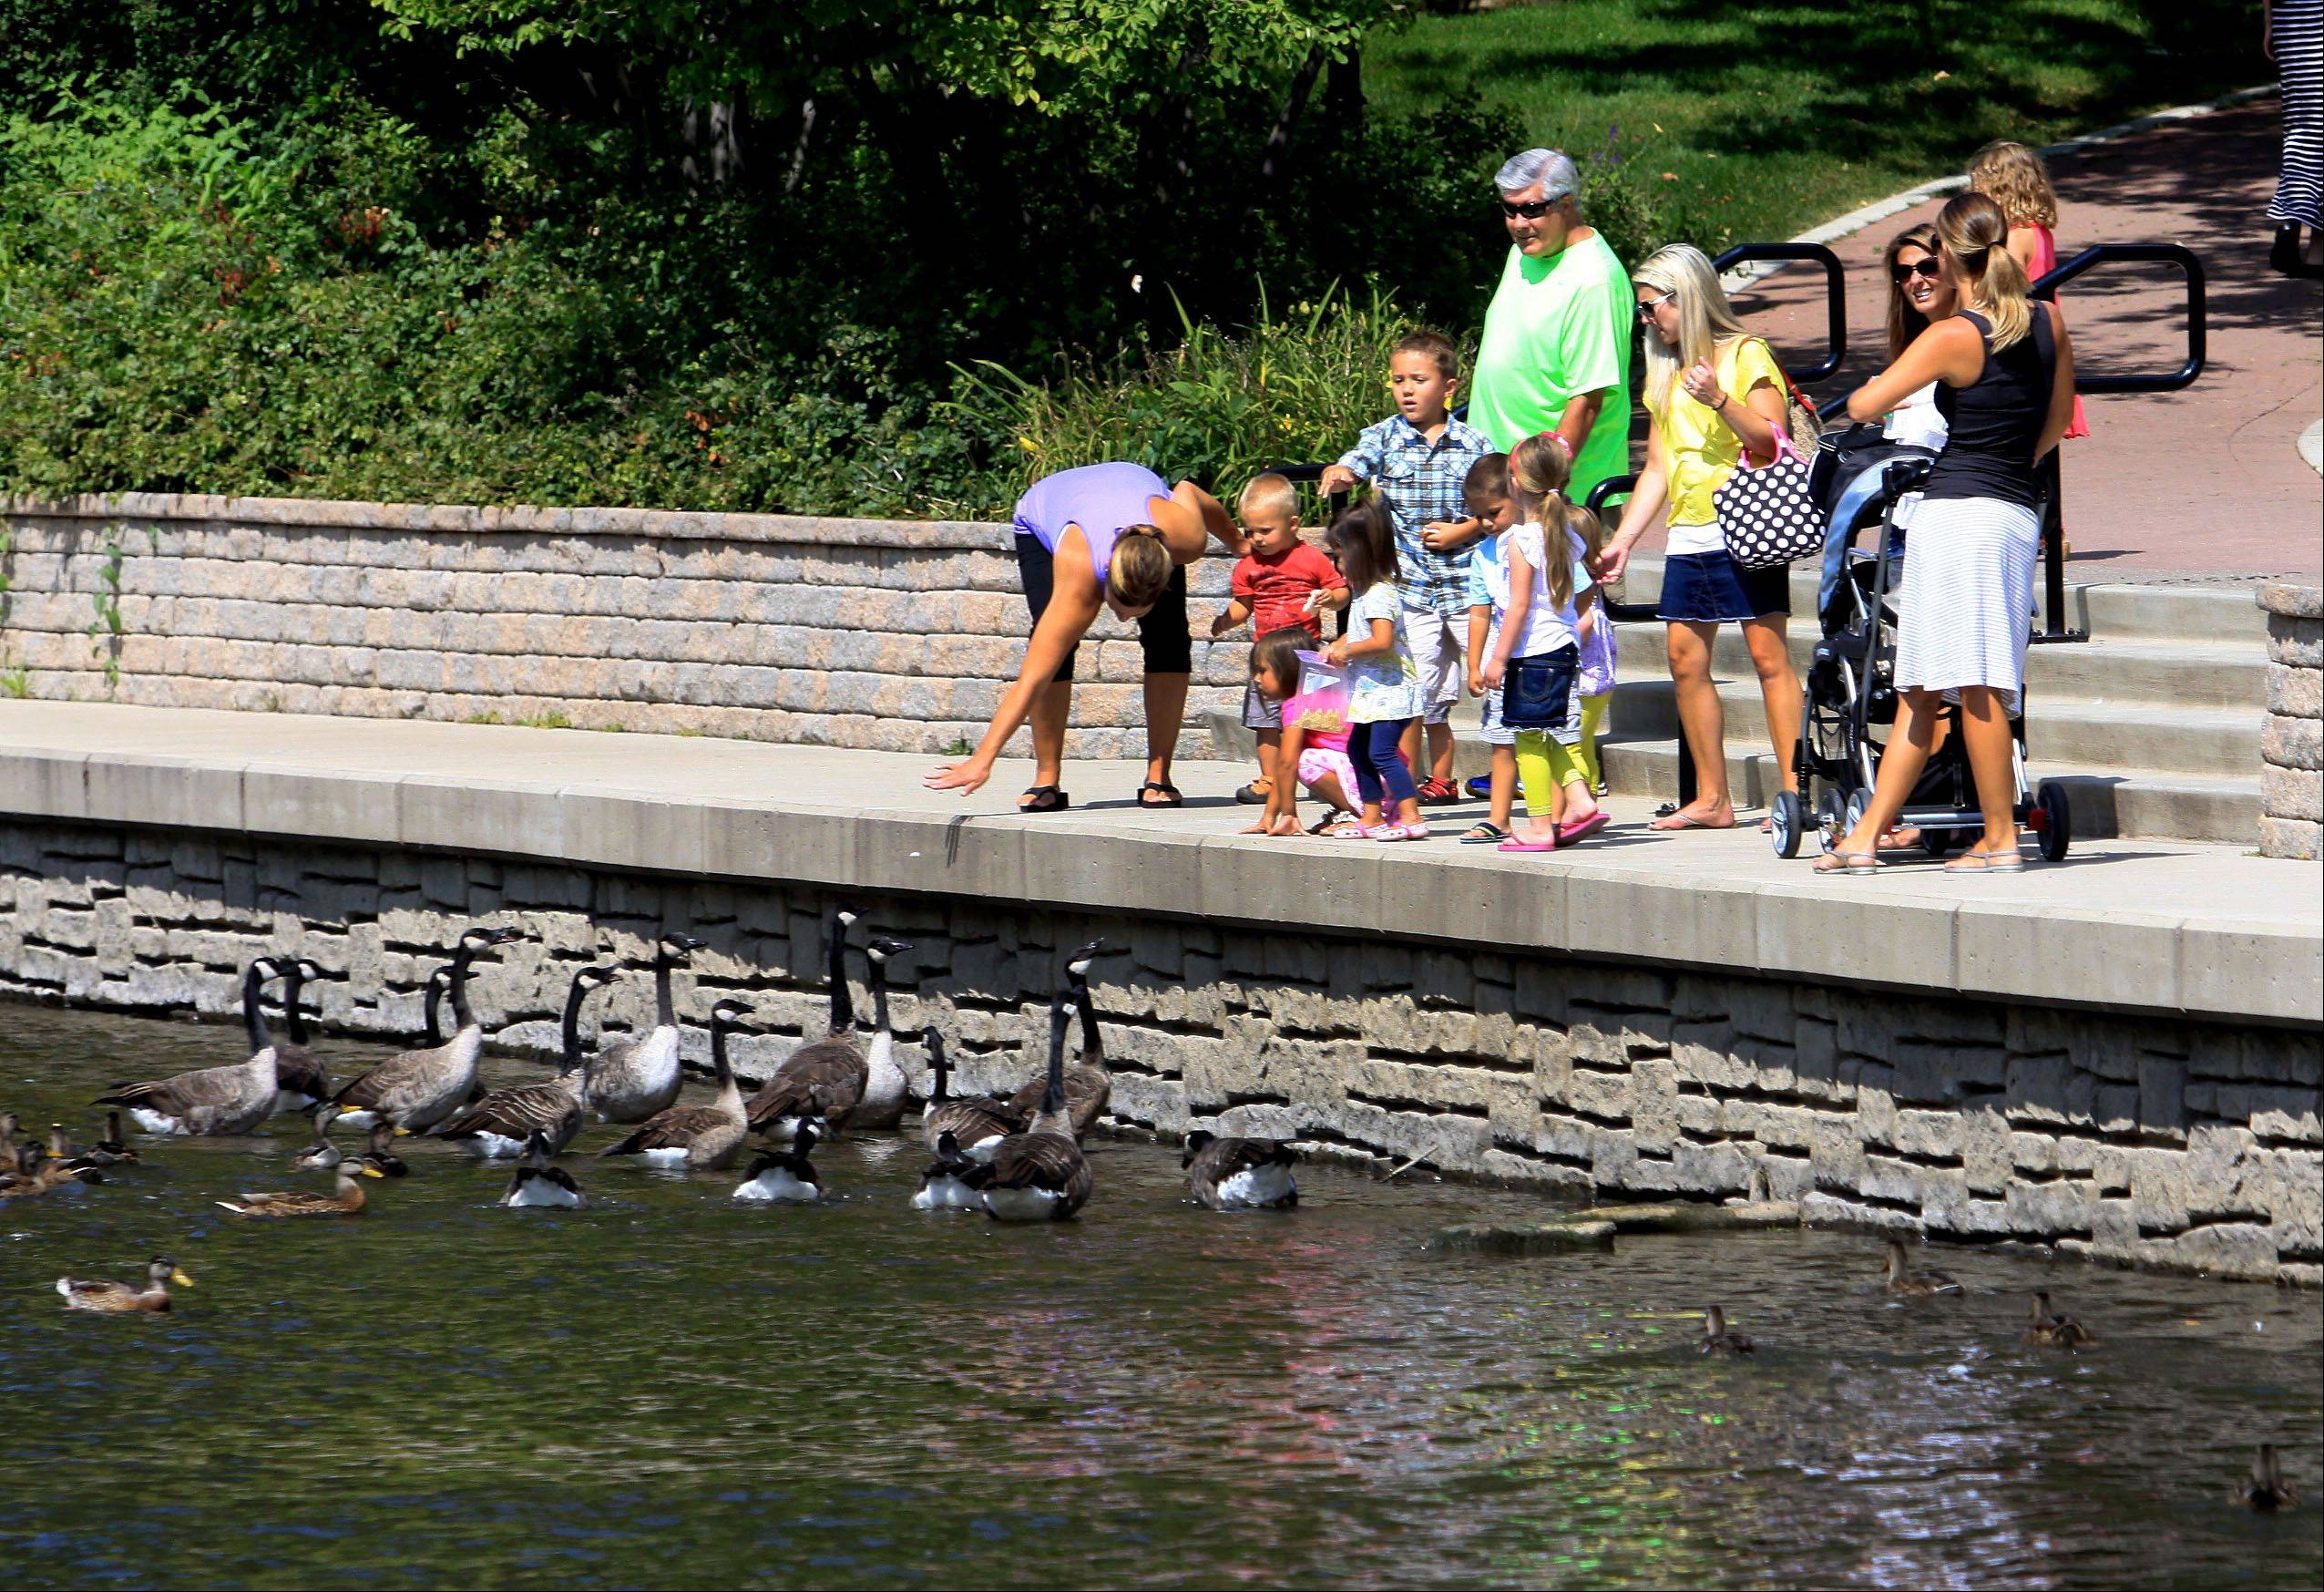 A group of people feeds the ducks and geese along the Riverwalk in Naperville. Officials have started handing out cards asking people not to feed the wildlife for the sake of both the animals and the river.